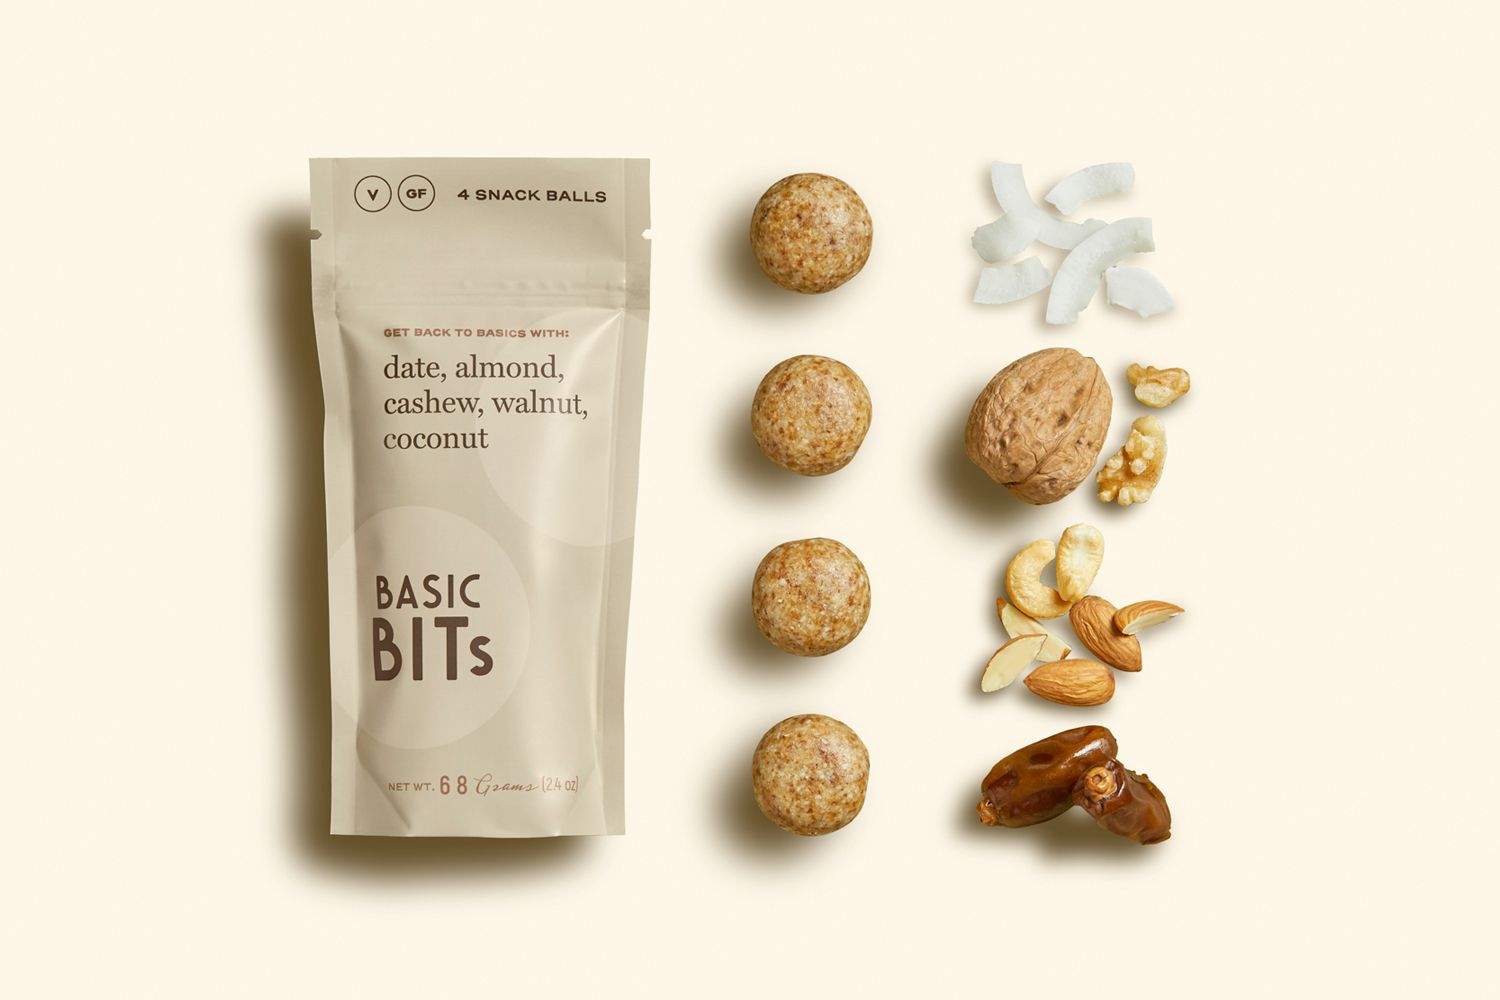 Download Basic Bits Snack Balls Packaging Design Food Packaging Healthy Energy Snack Bar Stand Up Pouch Logo Desi In 2020 Healthy Food Packaging Healthy Snack Brands Raw Snacks